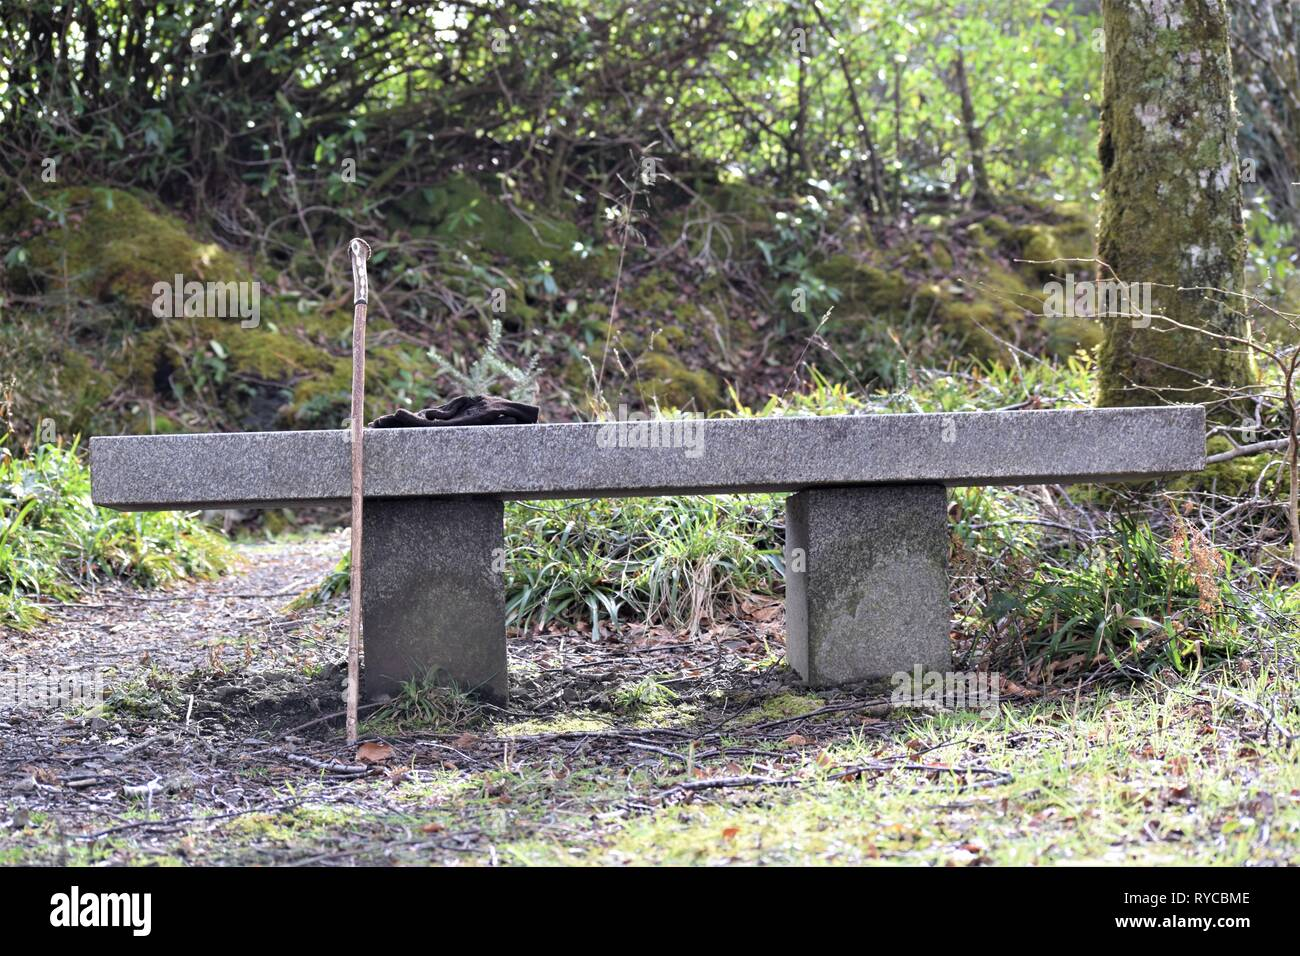 Marble seat situated close to the main road on the Sustrans National Cycle Network near the former Sea Life Centre at Barcaldine. - Stock Image